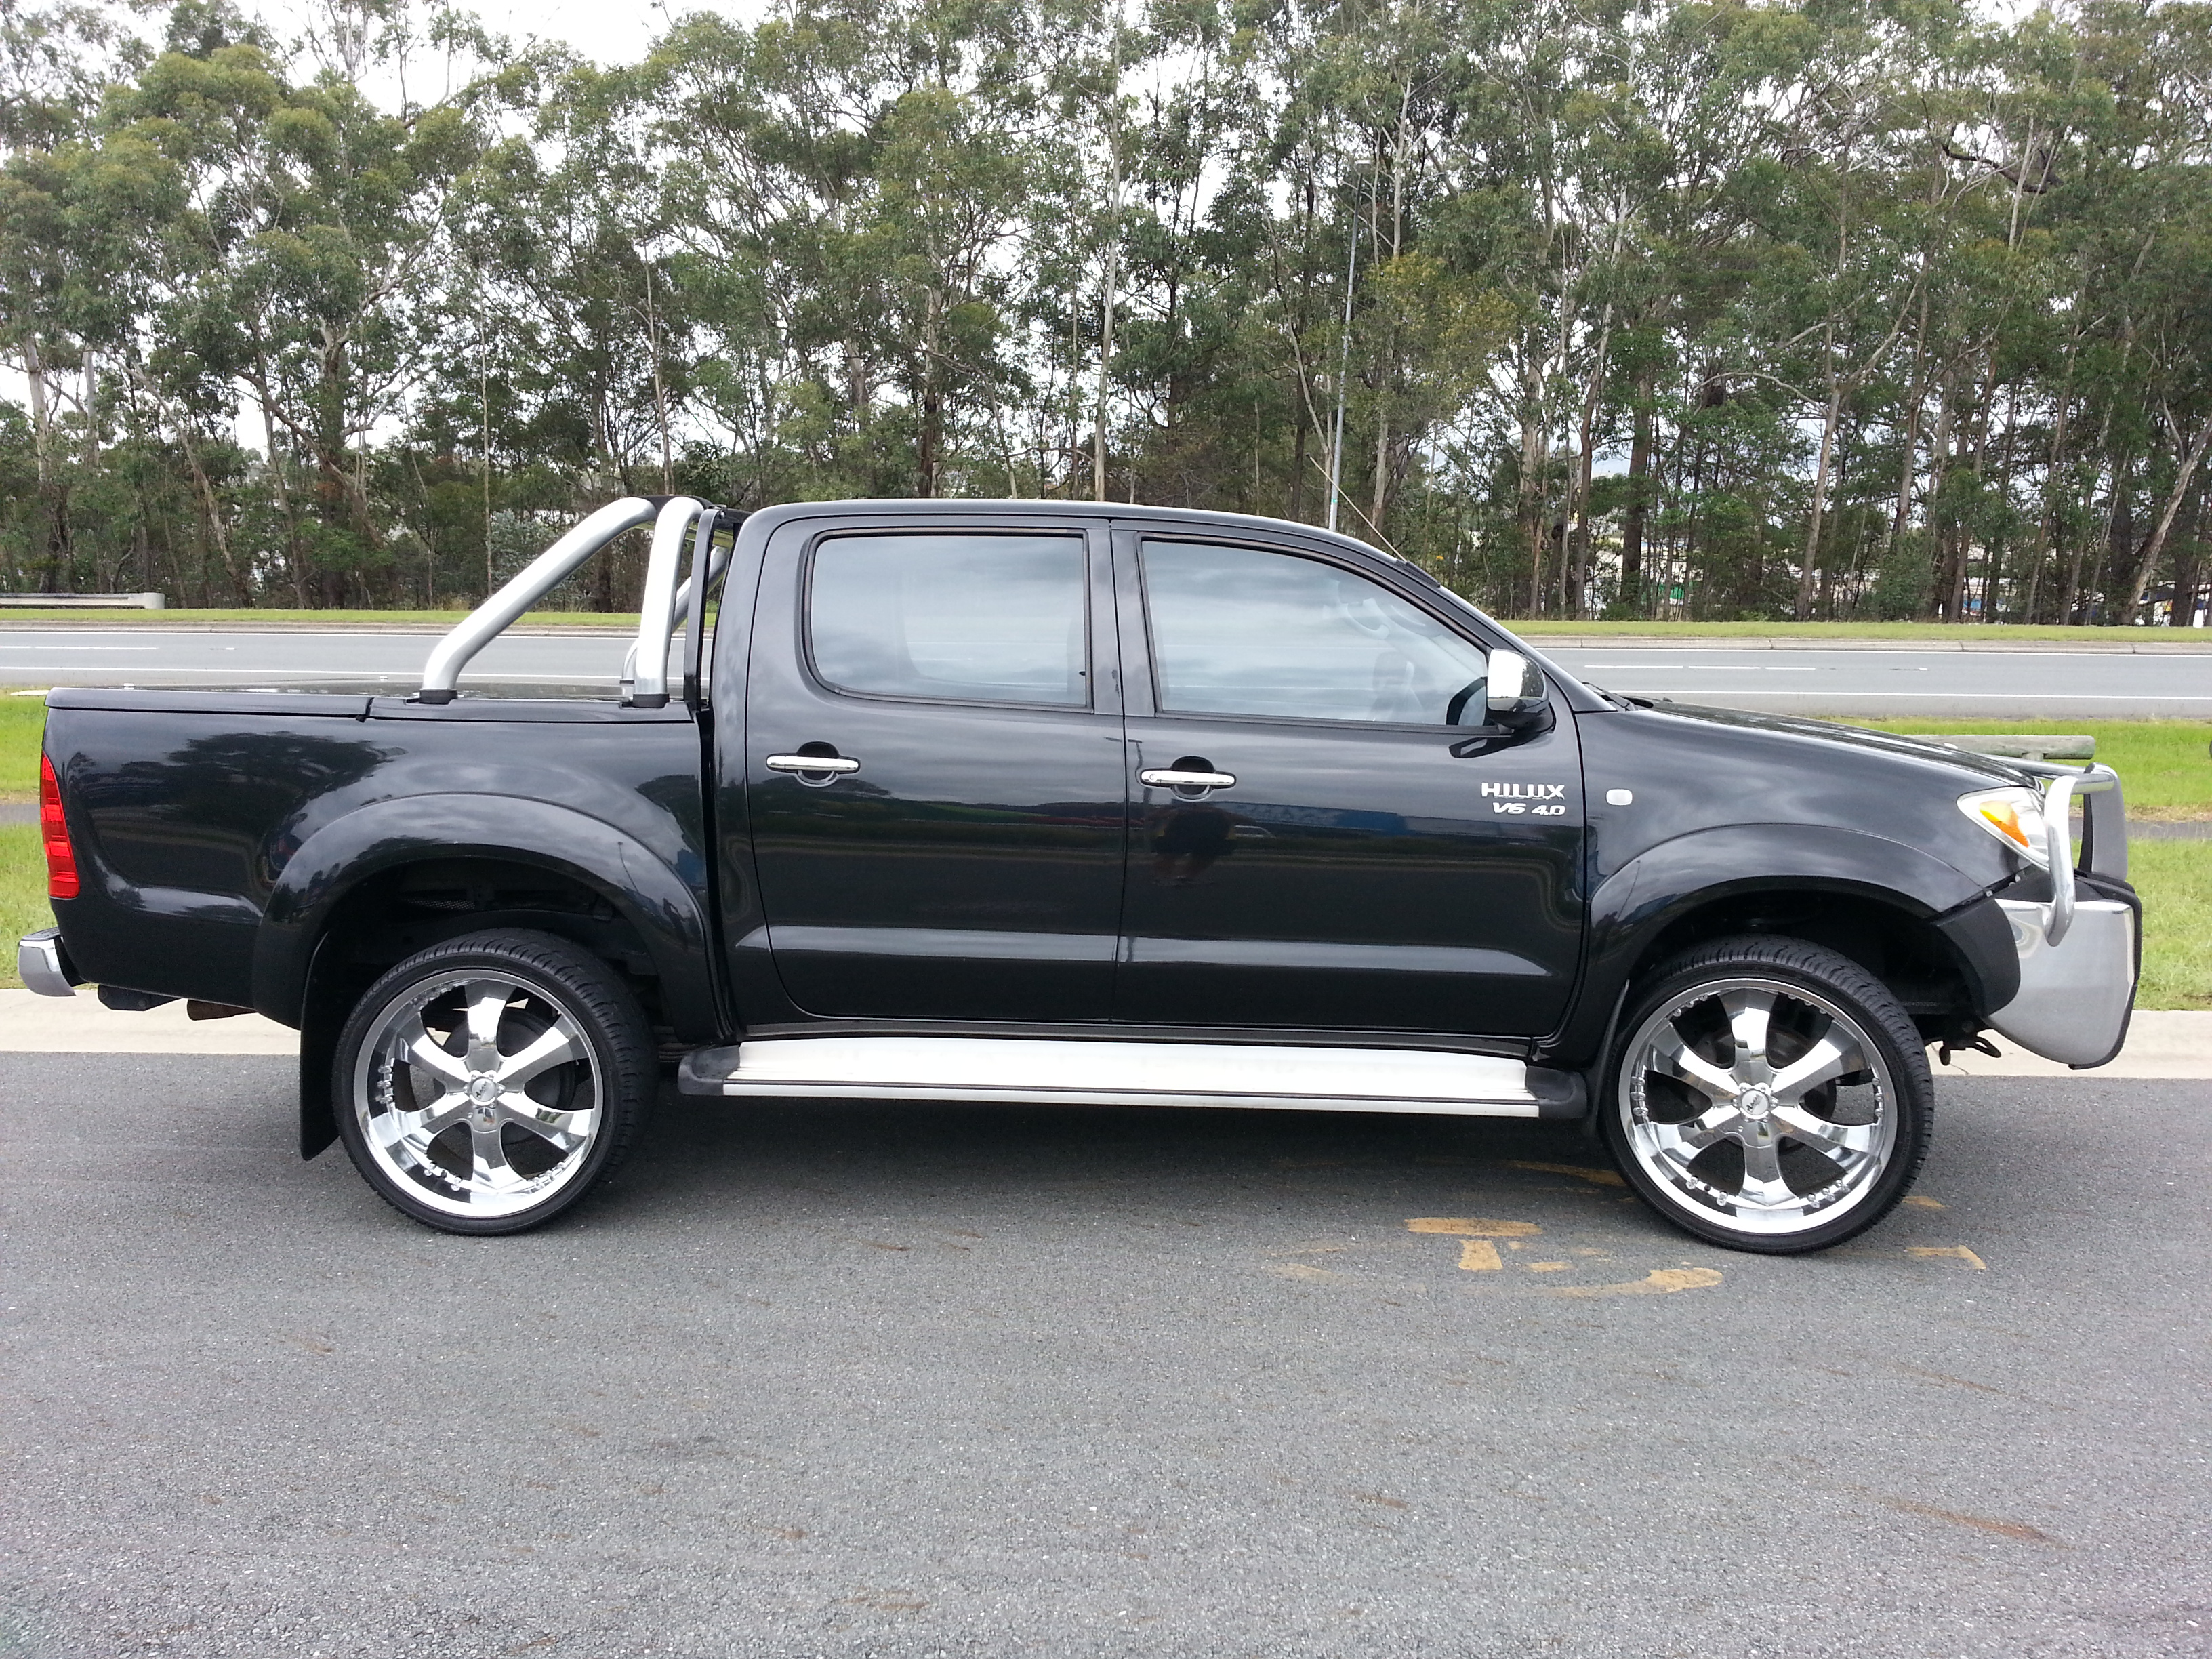 2006 toyota hilux sr5 4x4 ggn25r car sales qld gold coast 2504840. Black Bedroom Furniture Sets. Home Design Ideas